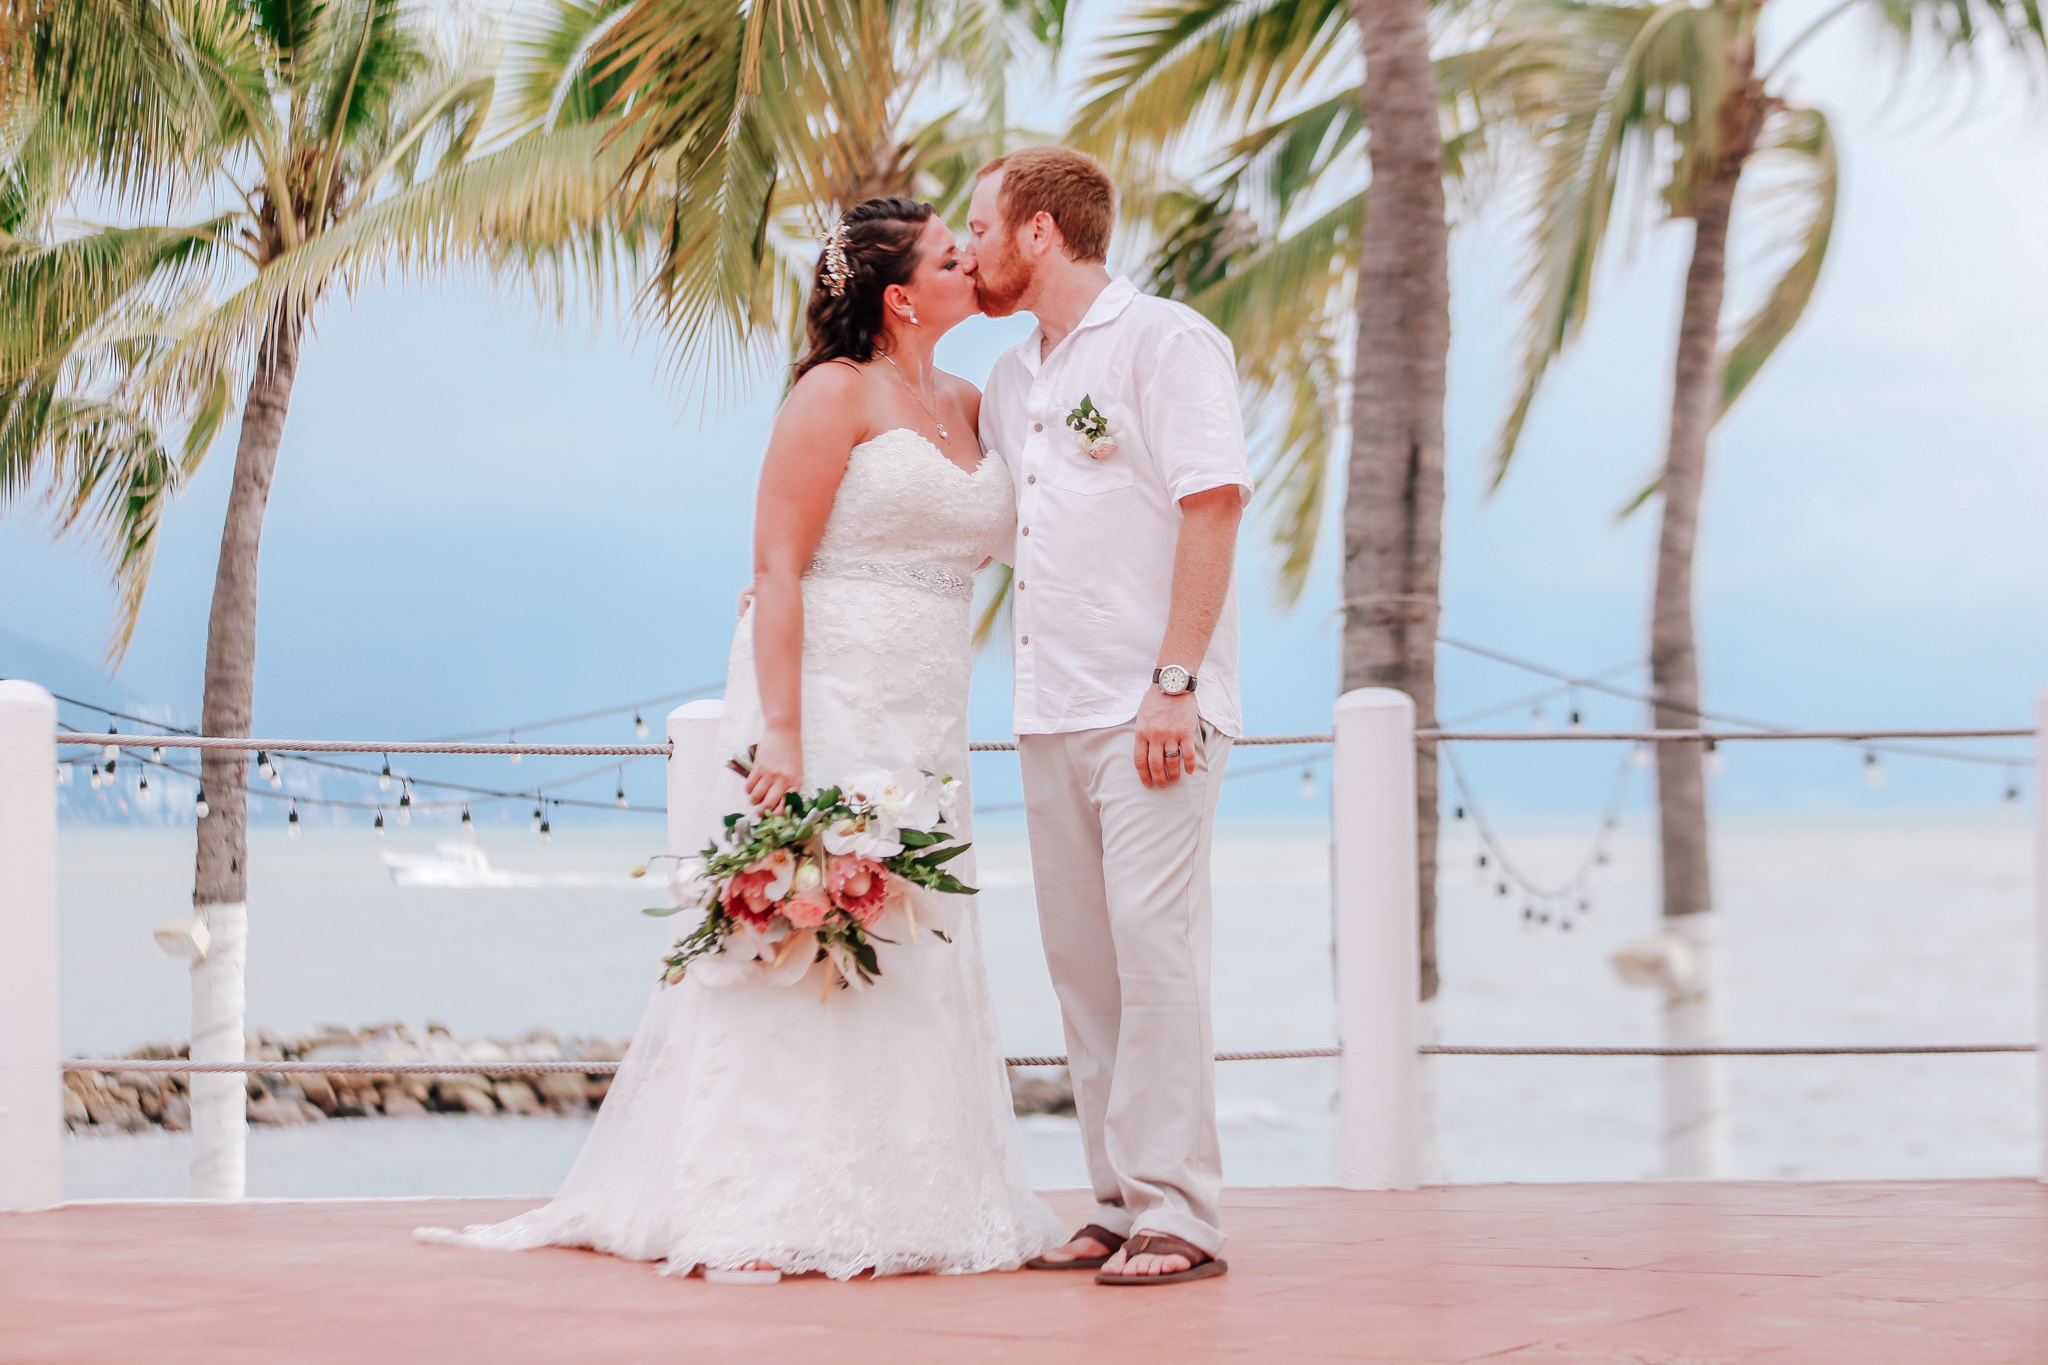 Tiffany and Ryan - Puerto Vallarta Wedding Photographer - 95.jpg